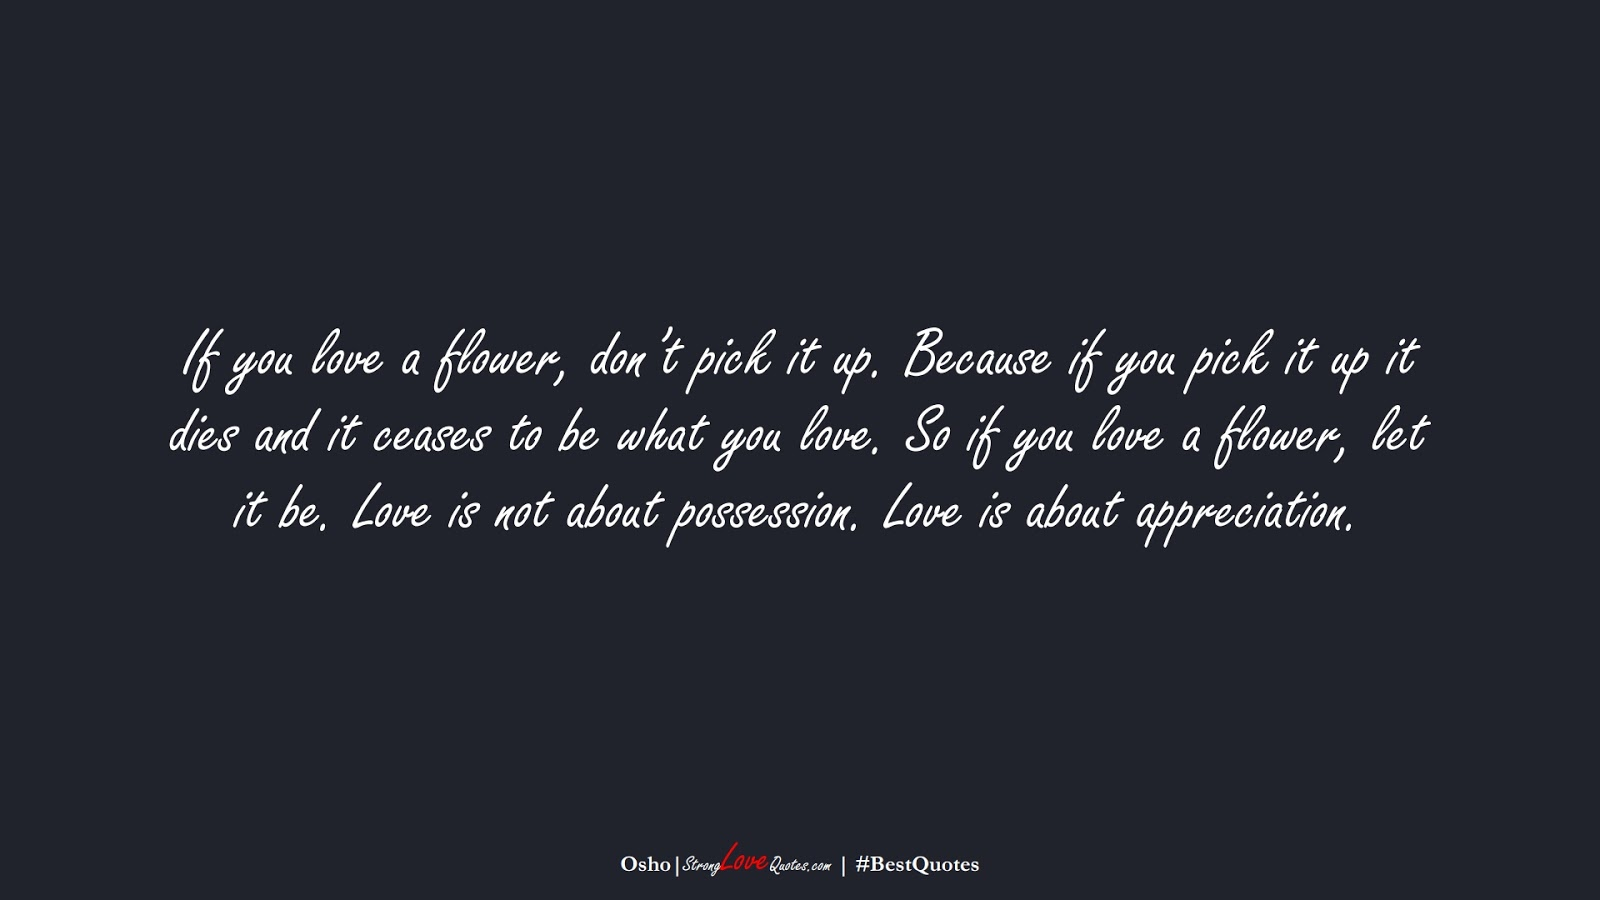 If you love a flower, don't pick it up. Because if you pick it up it dies and it ceases to be what you love. So if you love a flower, let it be. Love is not about possession. Love is about appreciation. (Osho);  #BestQuotes